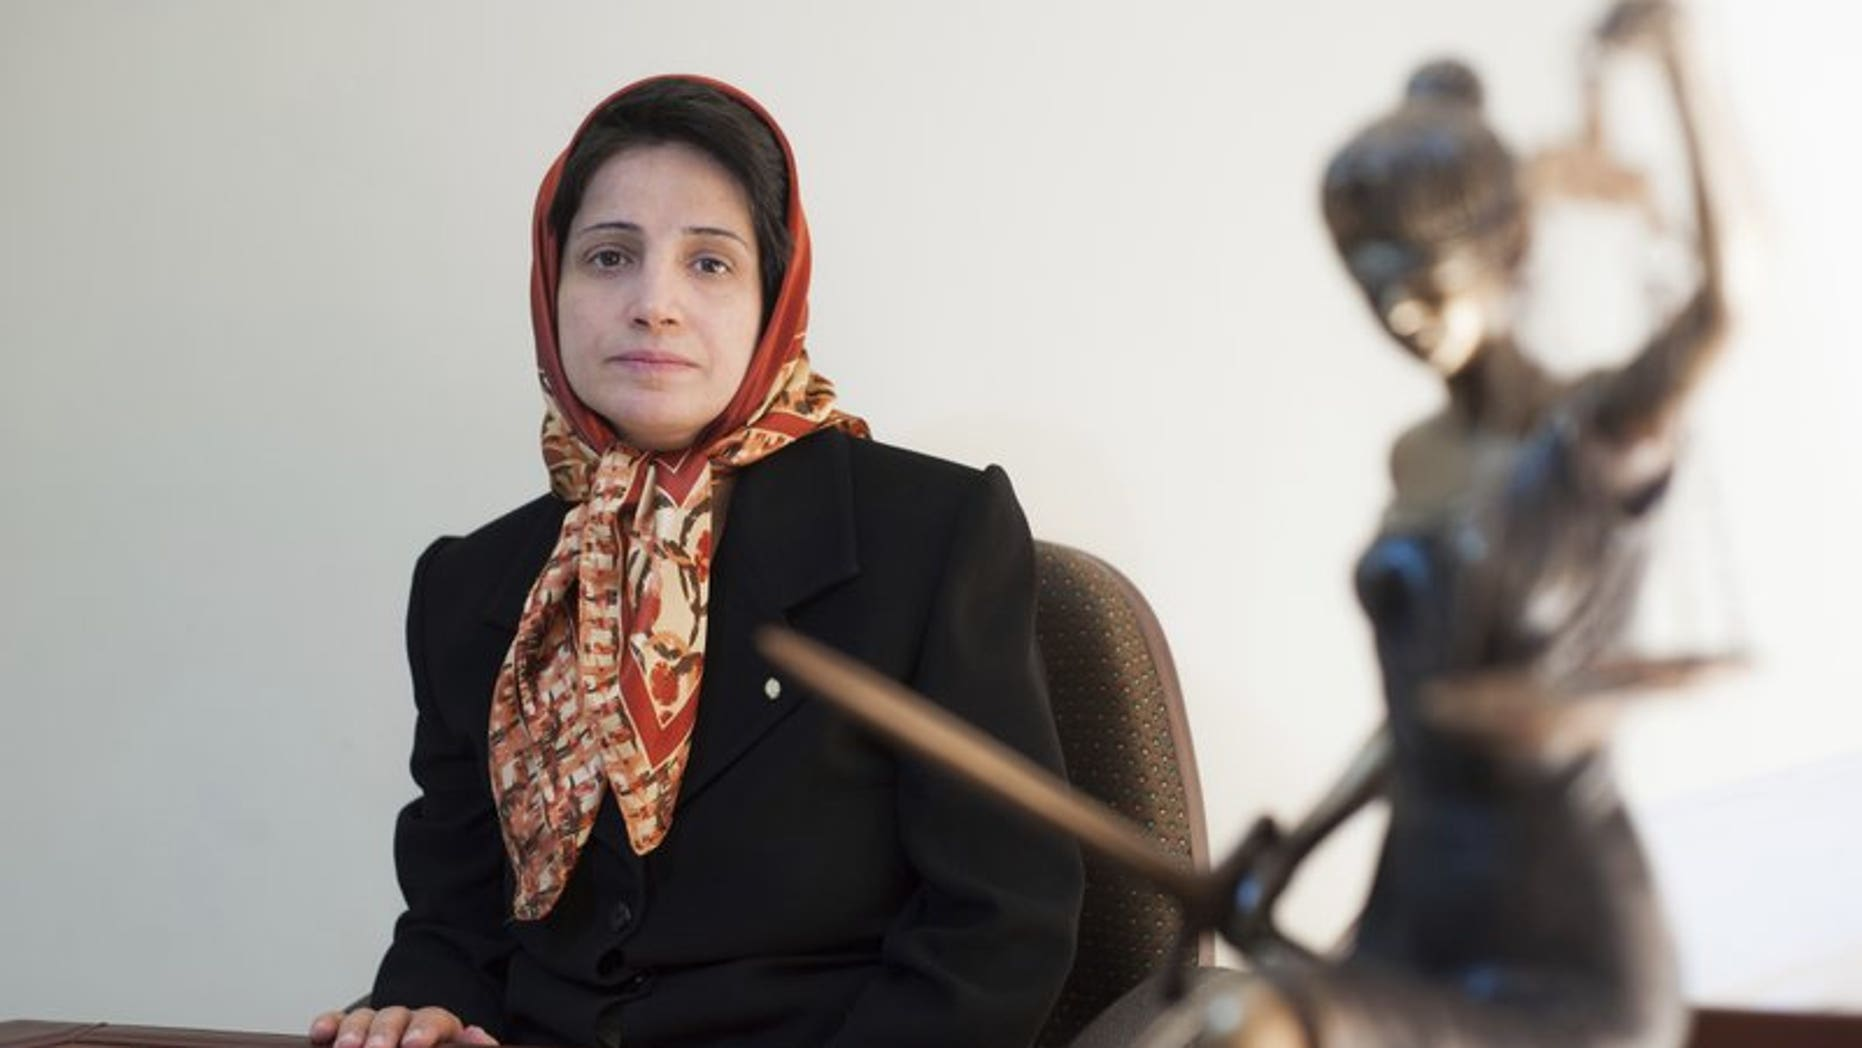 In this Nov. 1, 2008 photo, Iranian human rights lawyer Nasrin Sotoudeh, poses for a photograph in her office in Tehran, Iran. On Wednesday, March 6, 2019, the New York-based Center for Human Rights in Iran, said Sotoudeh, a prominent human rights lawyer in Iran who defended women protesting against the Islamic Republic's mandatory headscarf, has been convicted and faces years in prison.